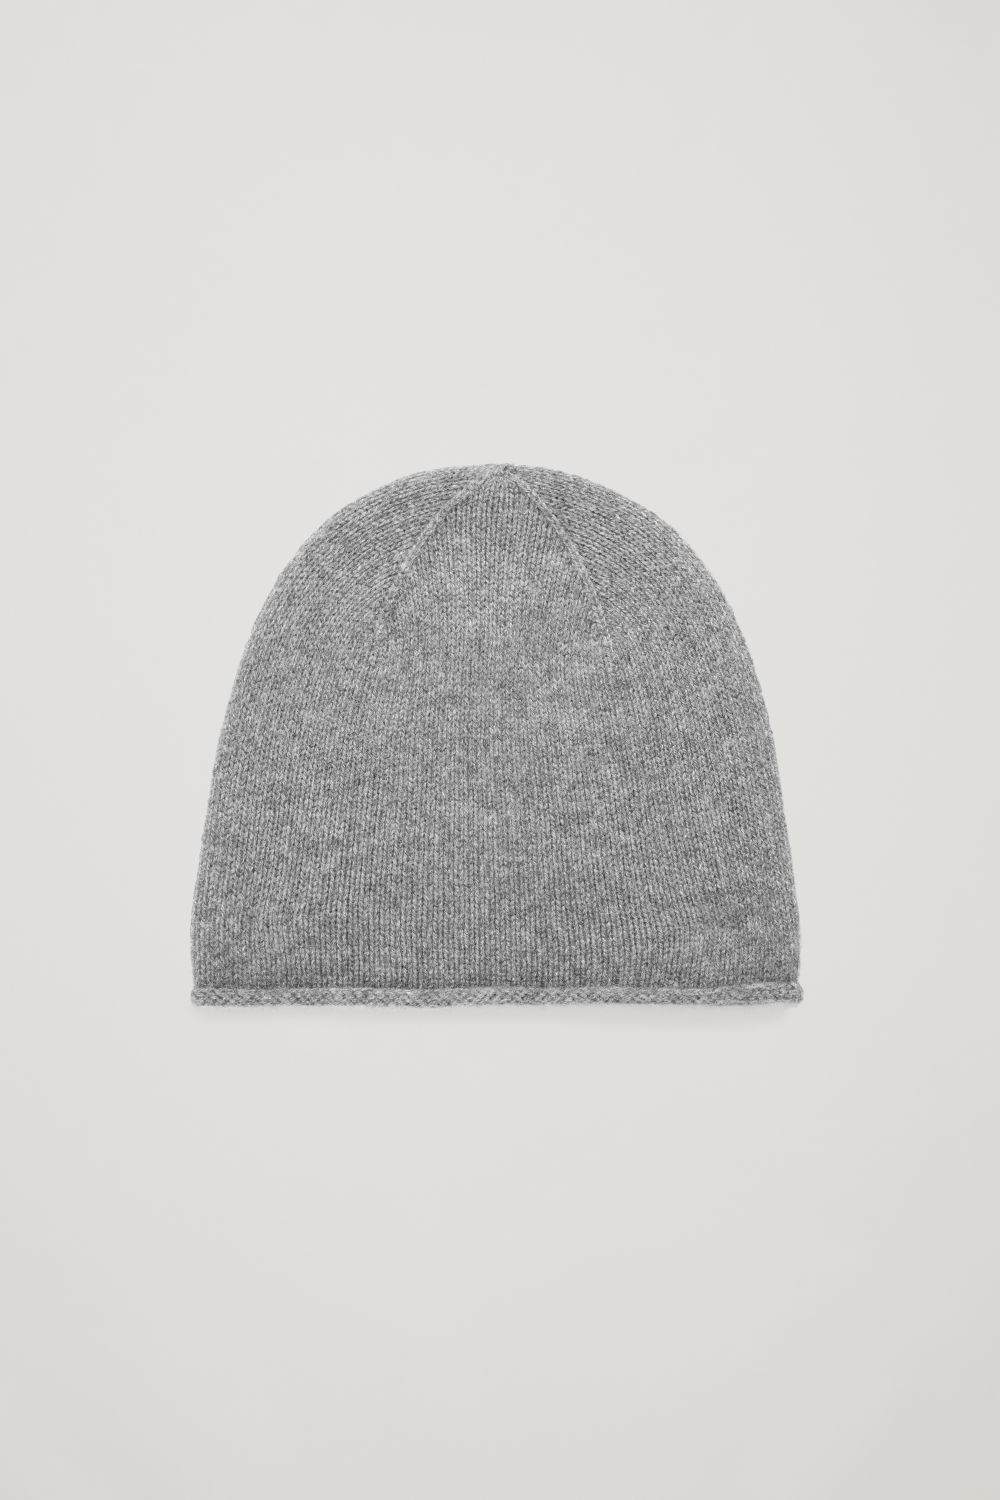 Cashmere Accessories - Hats a3129d553bf